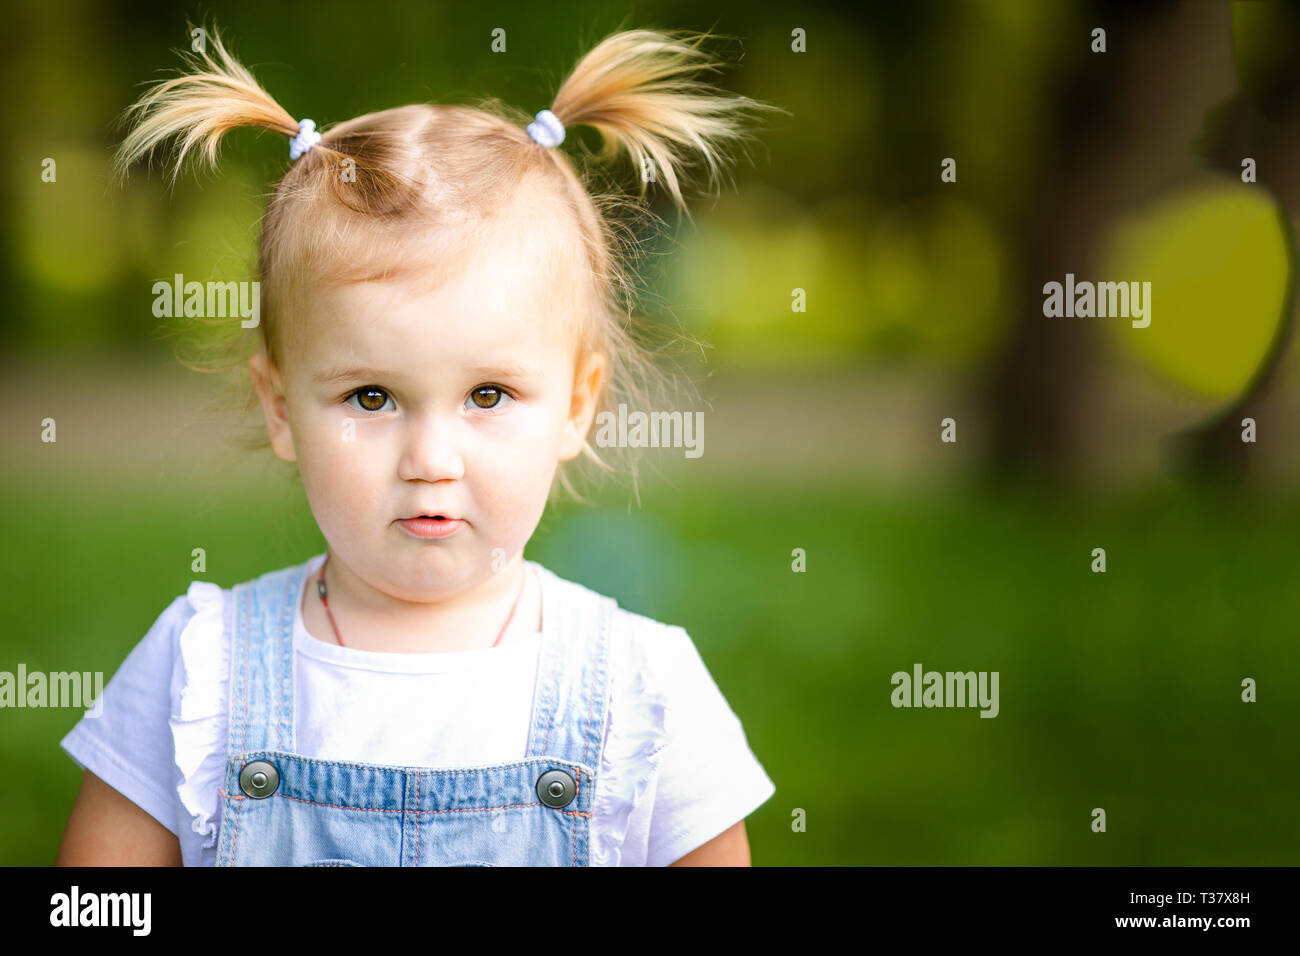 4d7bef651c Happy funny blonde baby girl with two little braids in white t-shirt and  jeans